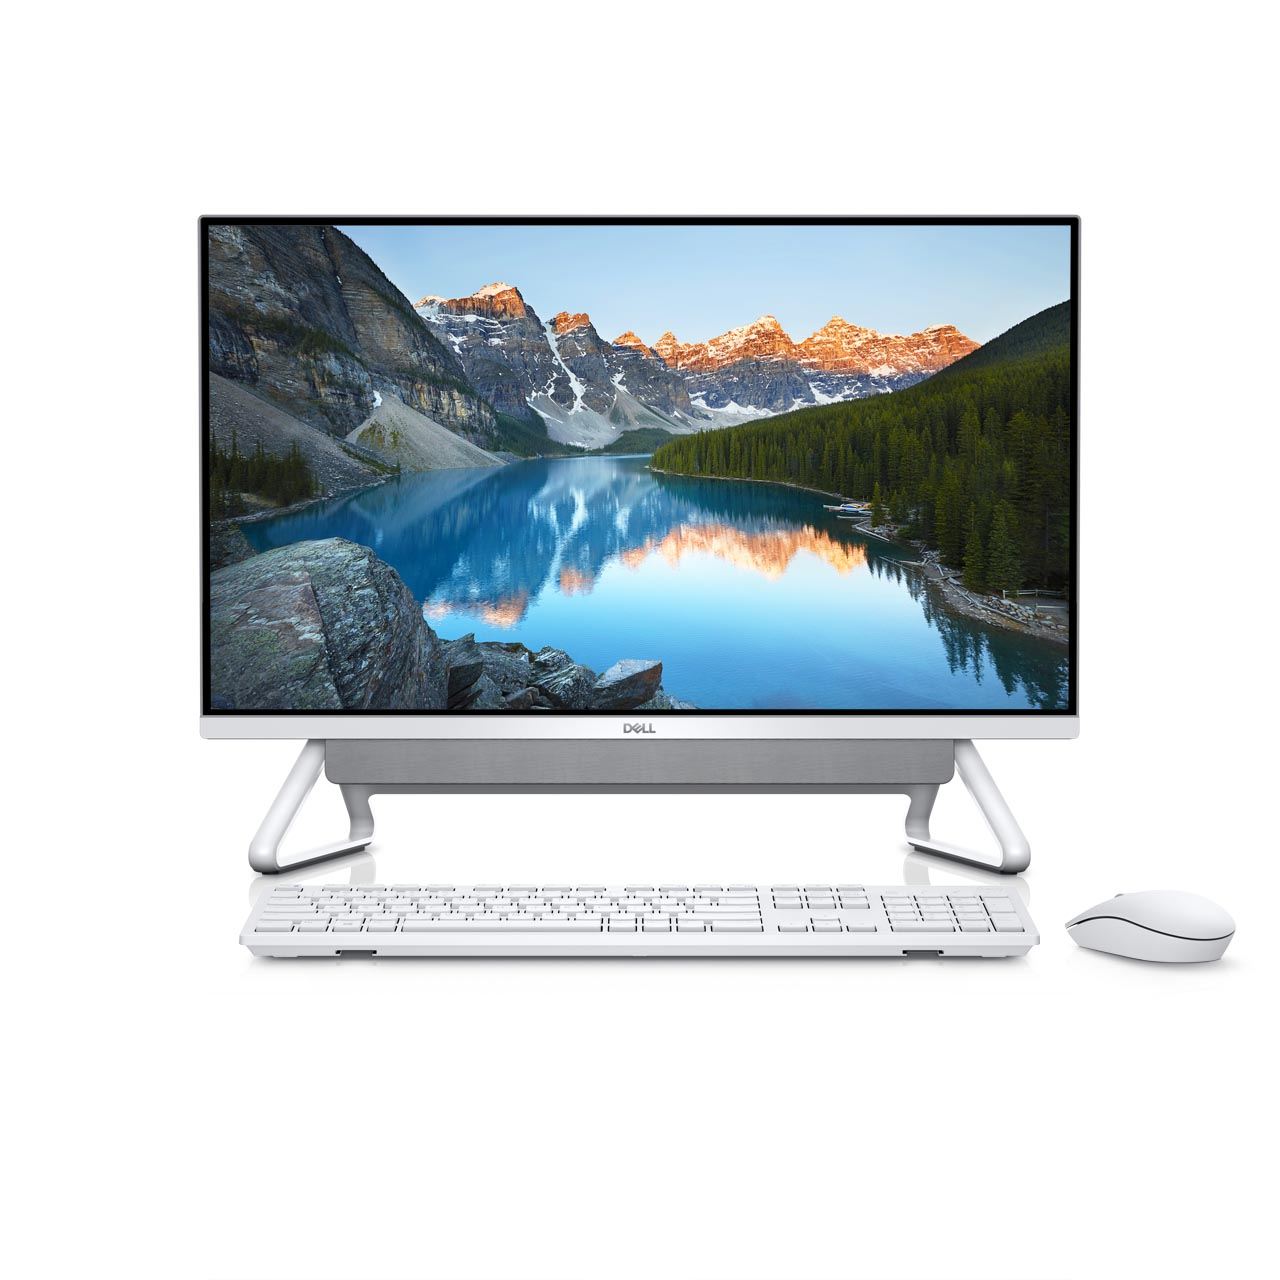 Inspiron 27 7000 (7790) All-in-One